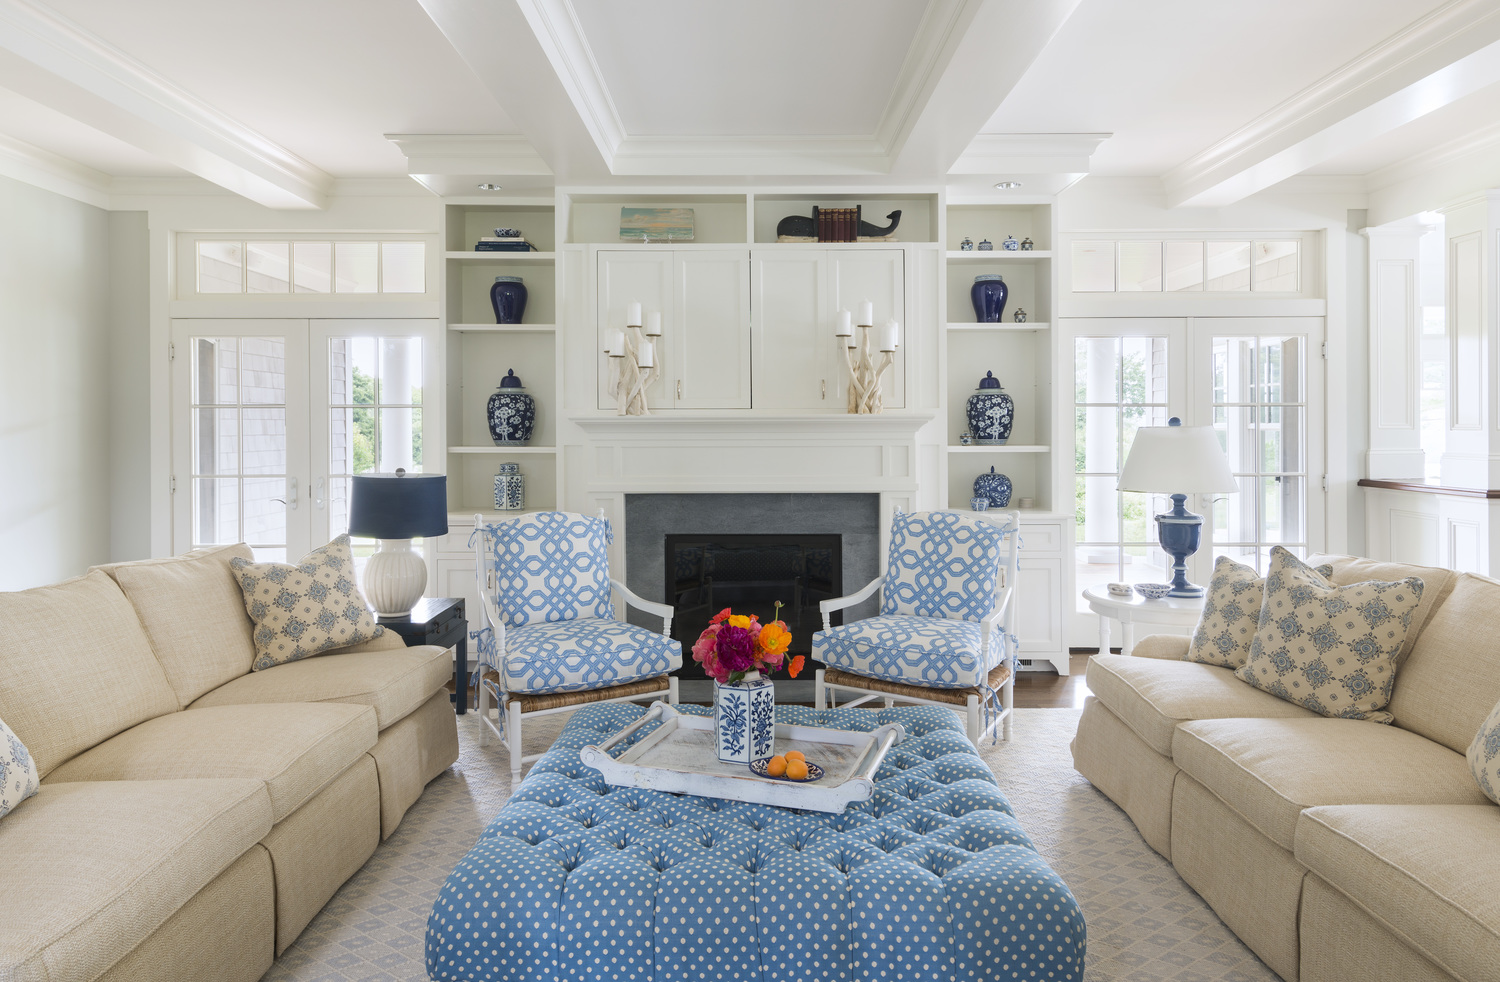 House Tour-Coastal Serenity in Newport, Rhode Island 6.jpg